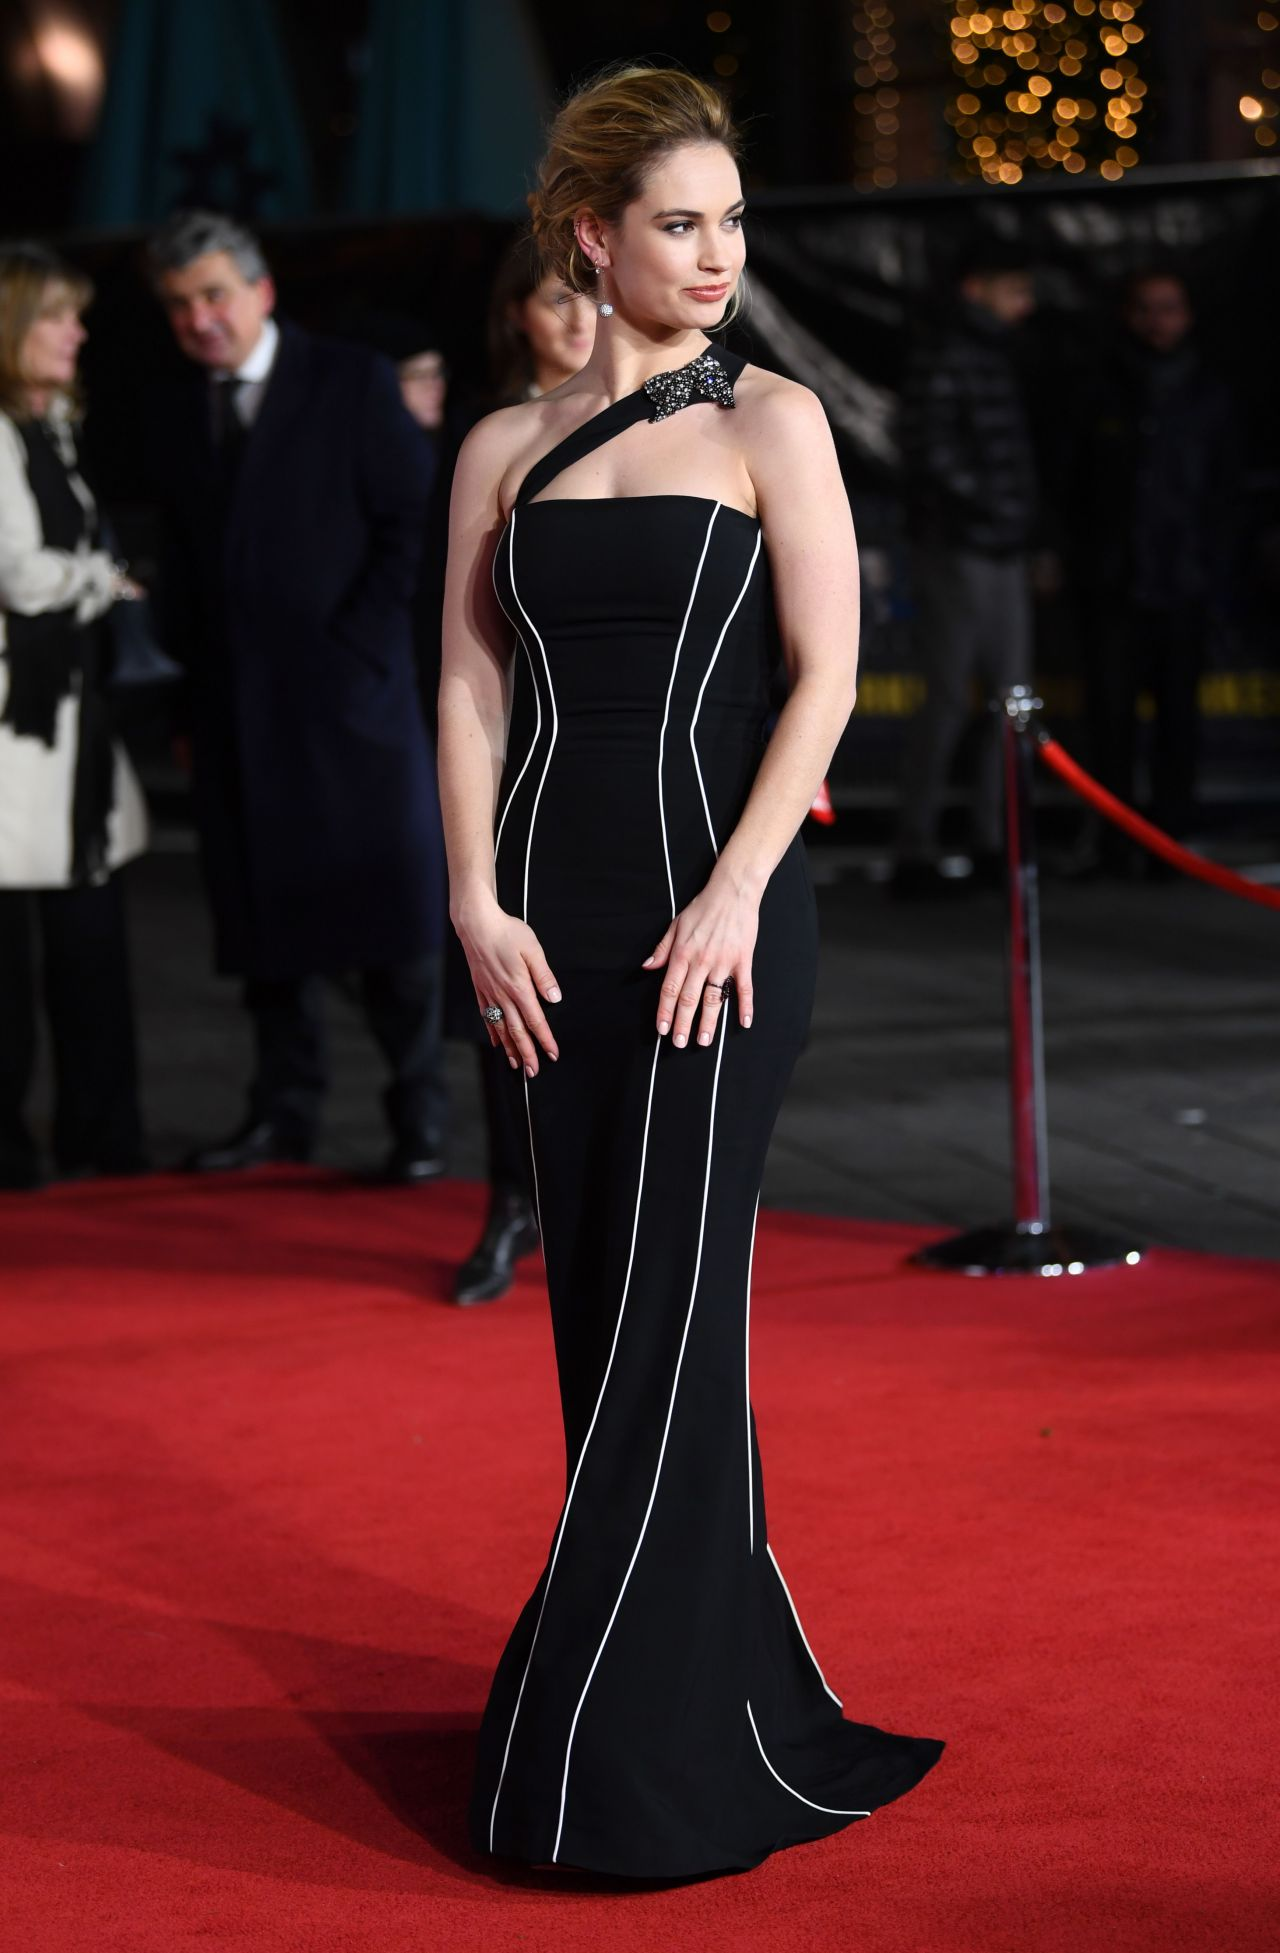 http://celebmafia.com/wp-content/uploads/2017/12/lily-james-darkest-hour-premiere-in-london-2.jpg